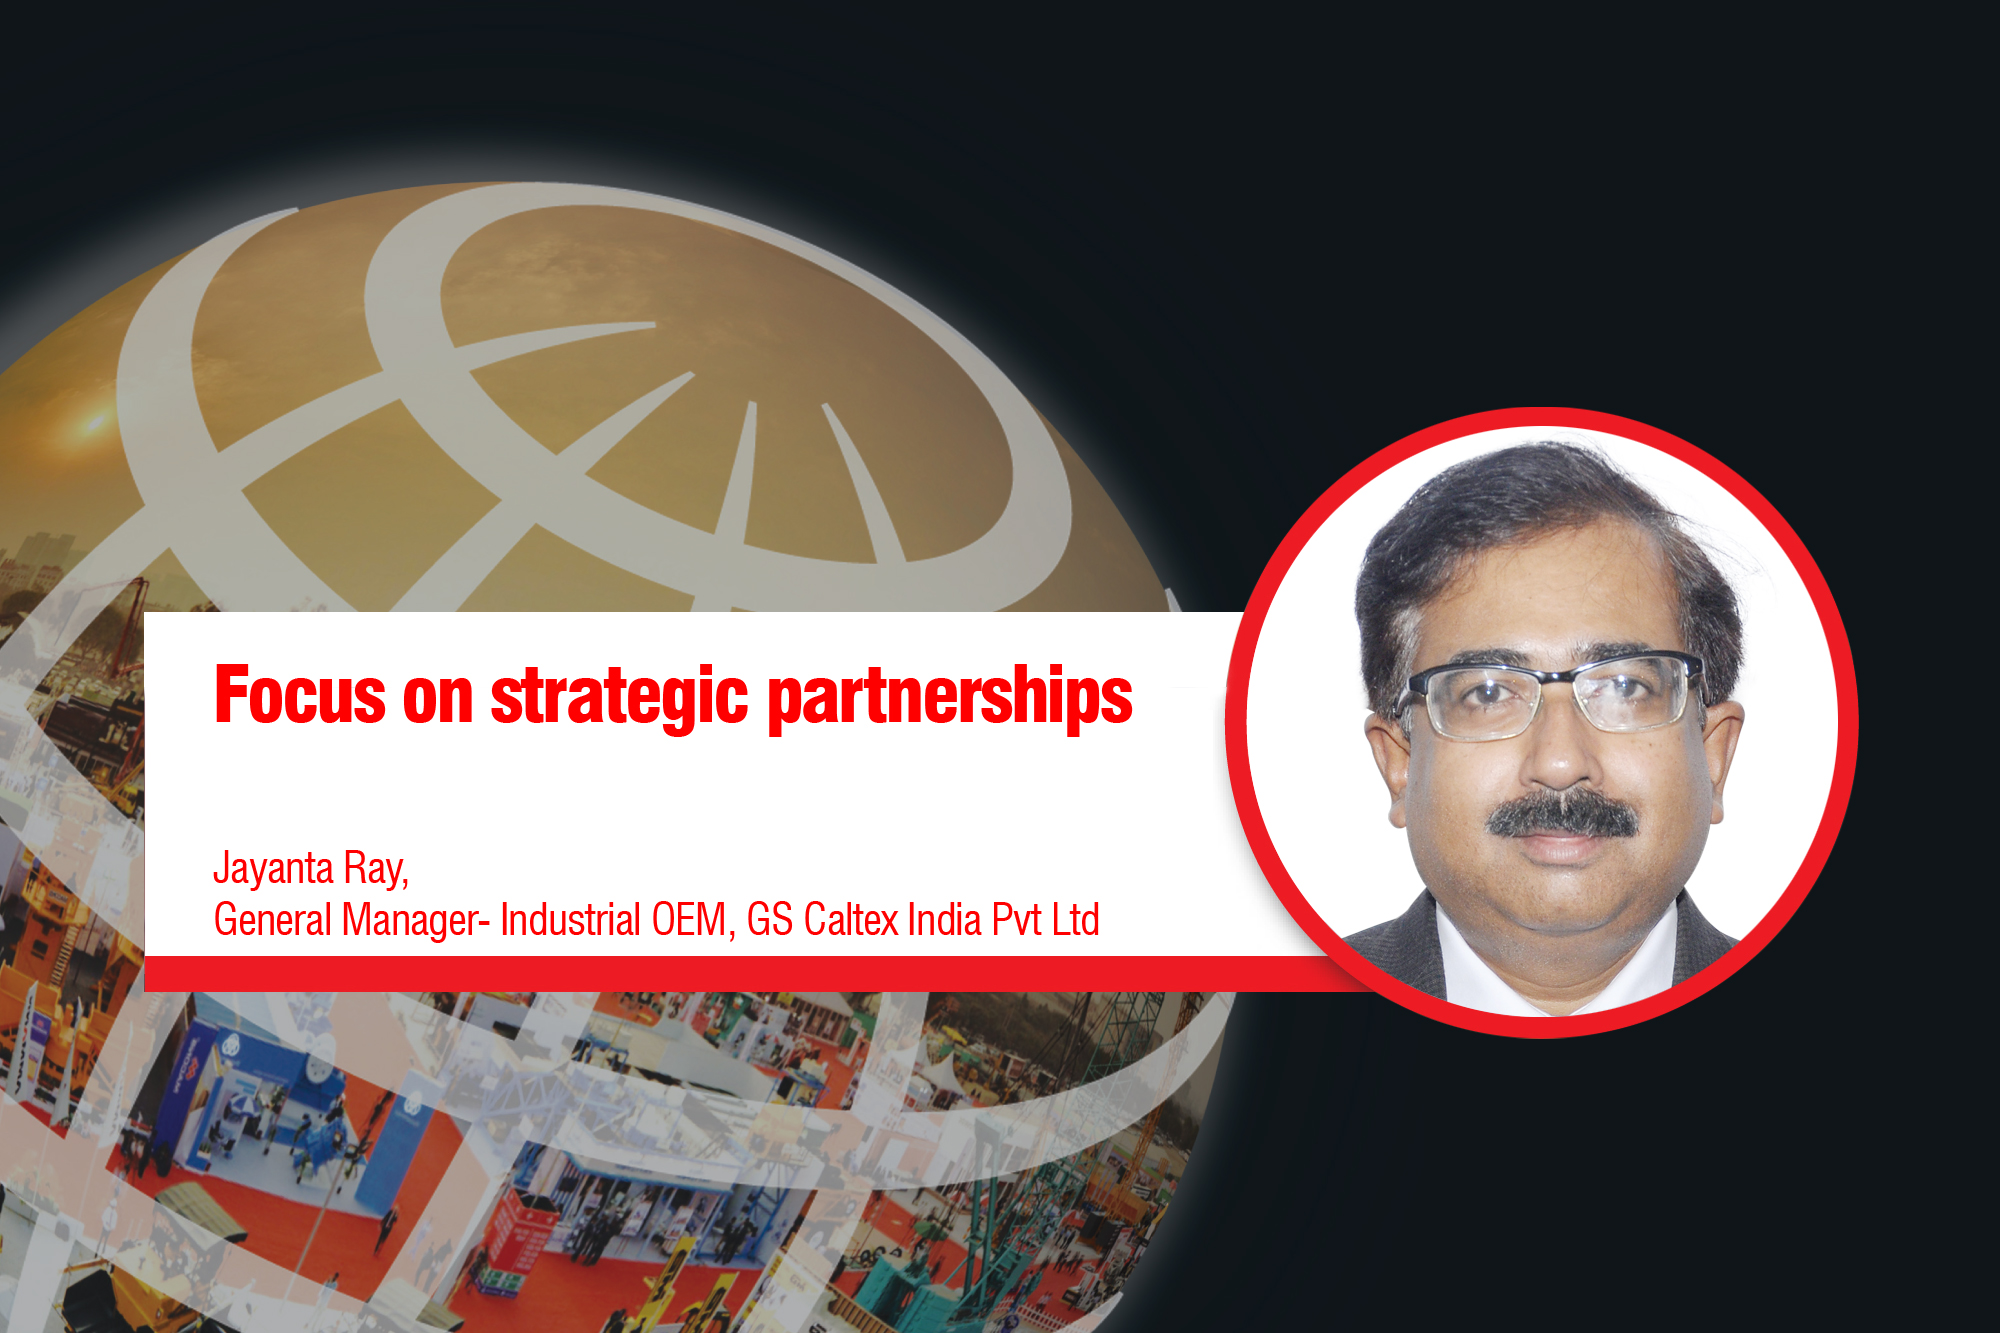 Focus on strategic partnerships